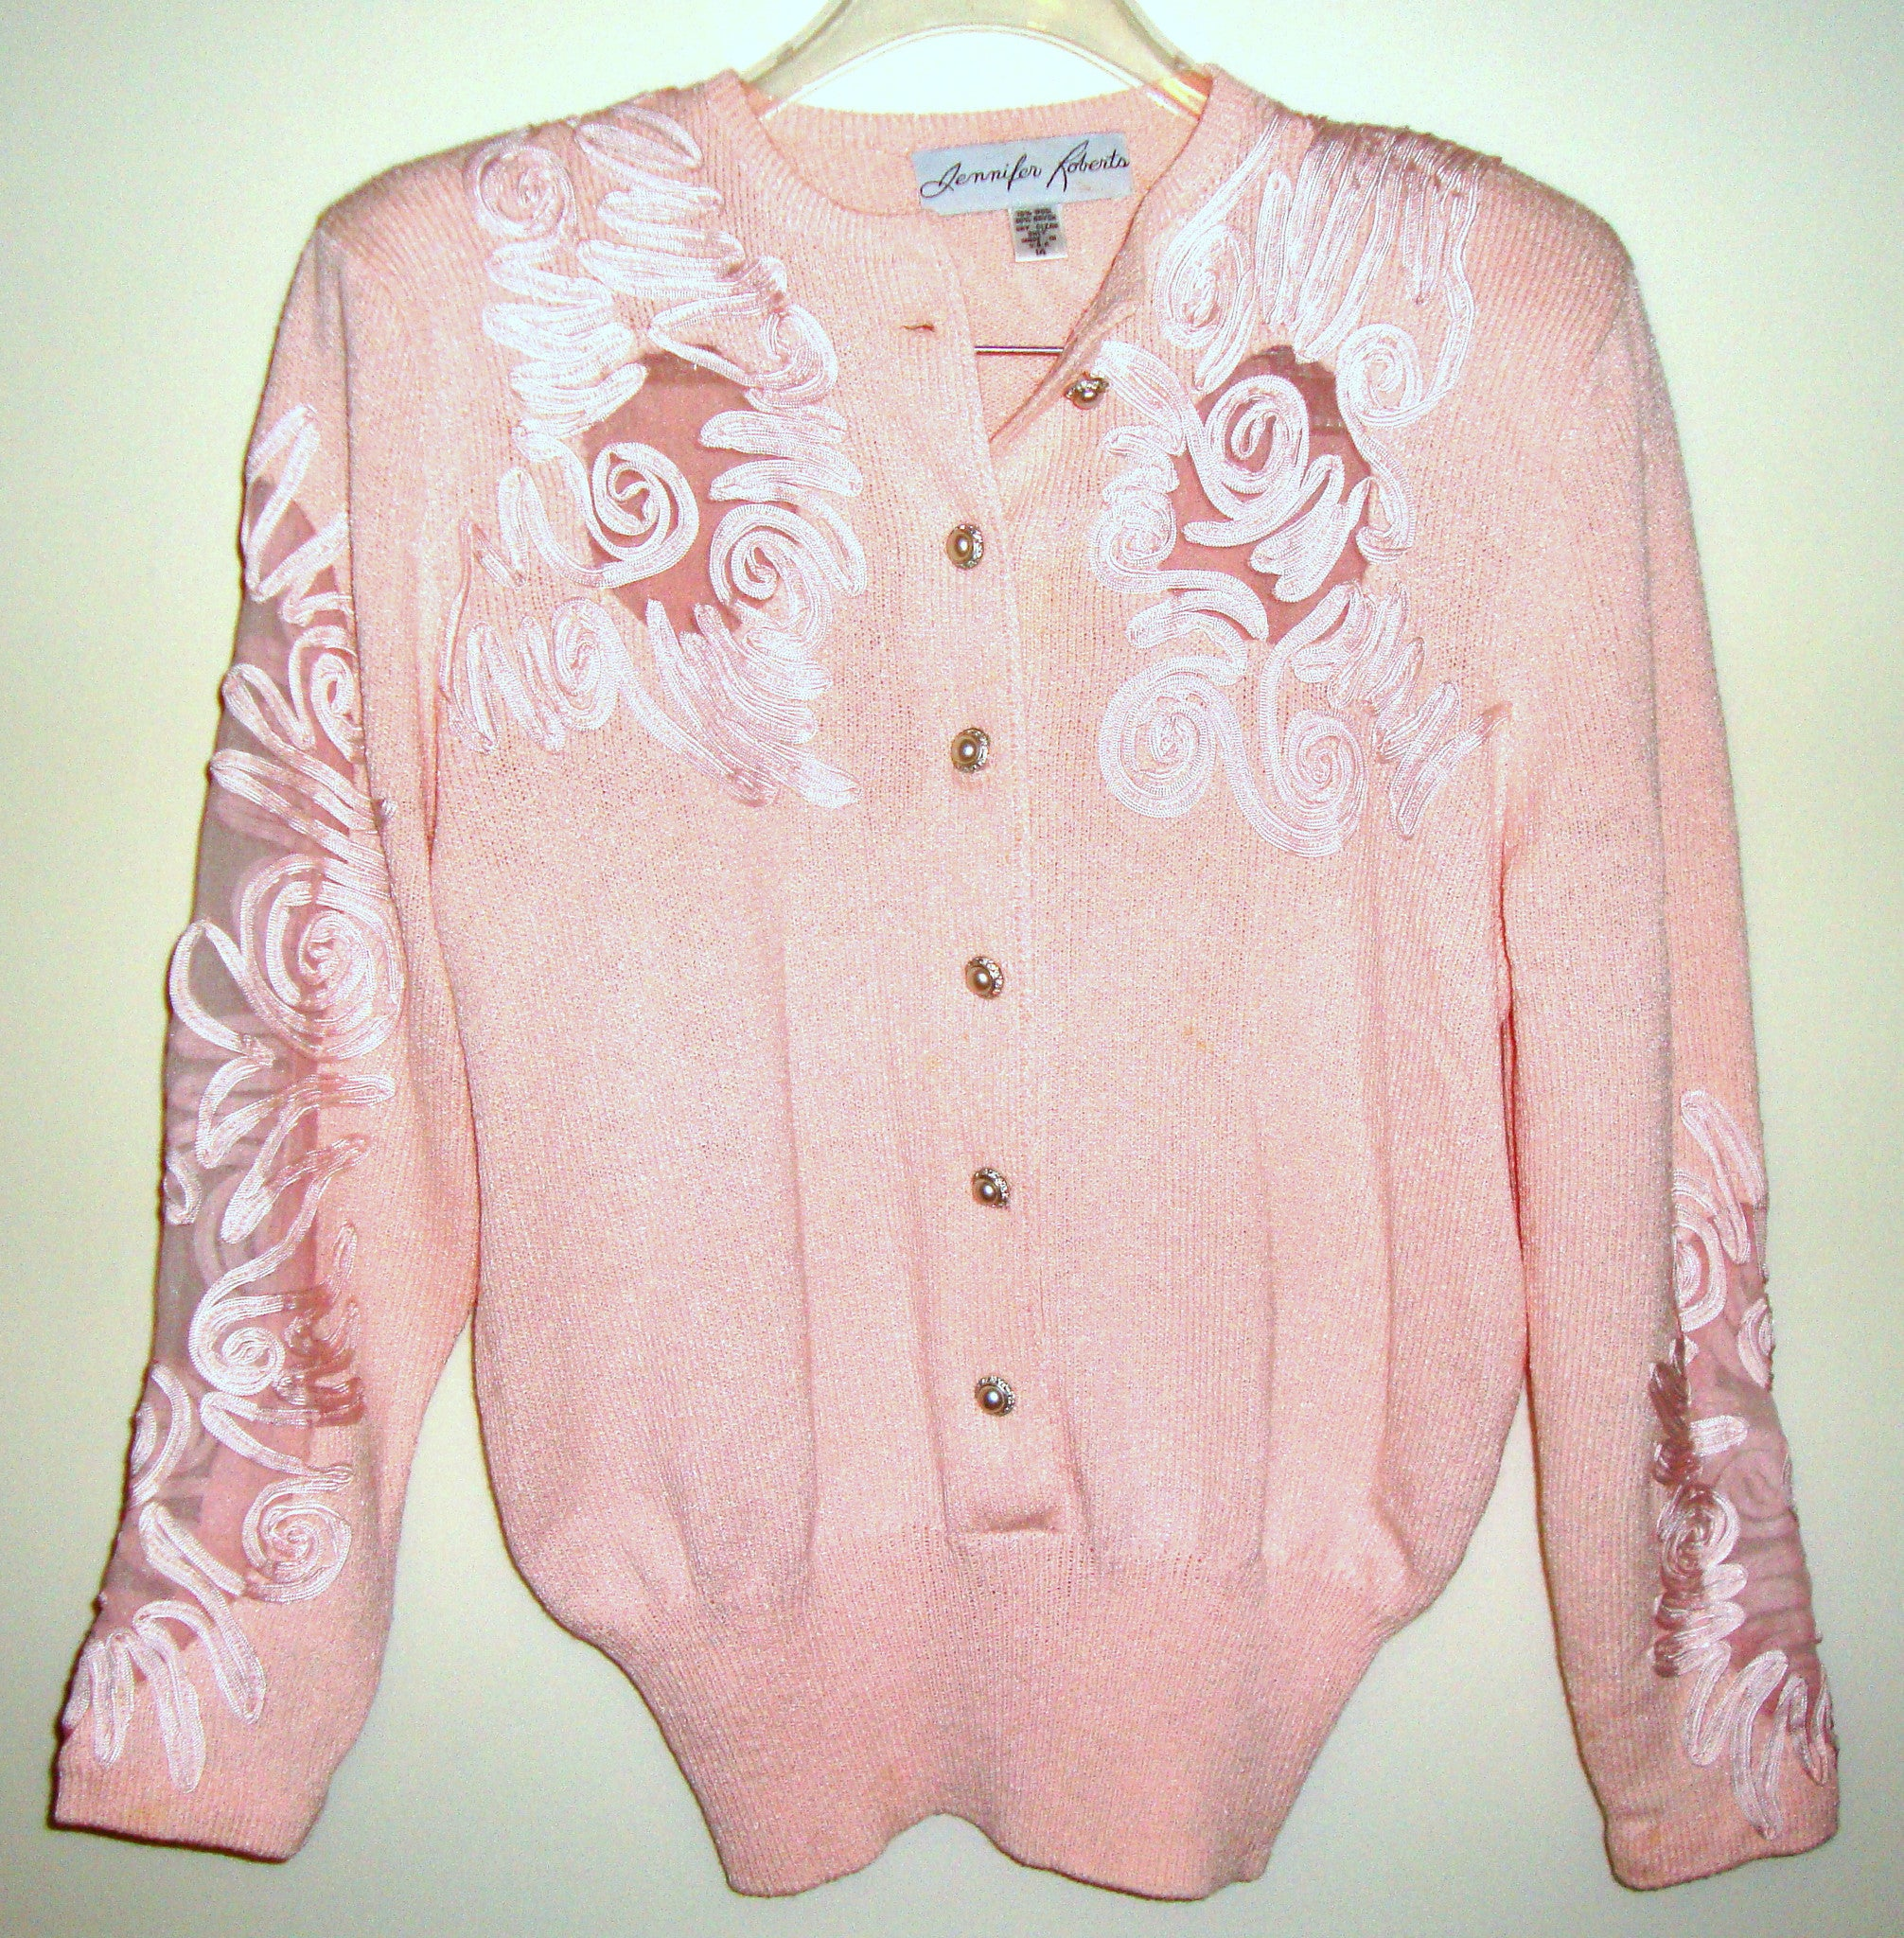 [VINTAGE] JENNIFER ROBERTS - PINK EMBROIDERED SWEATER SUIT WITH RHINESTONE AND PEARL BUTTONS SZ MEDIUM